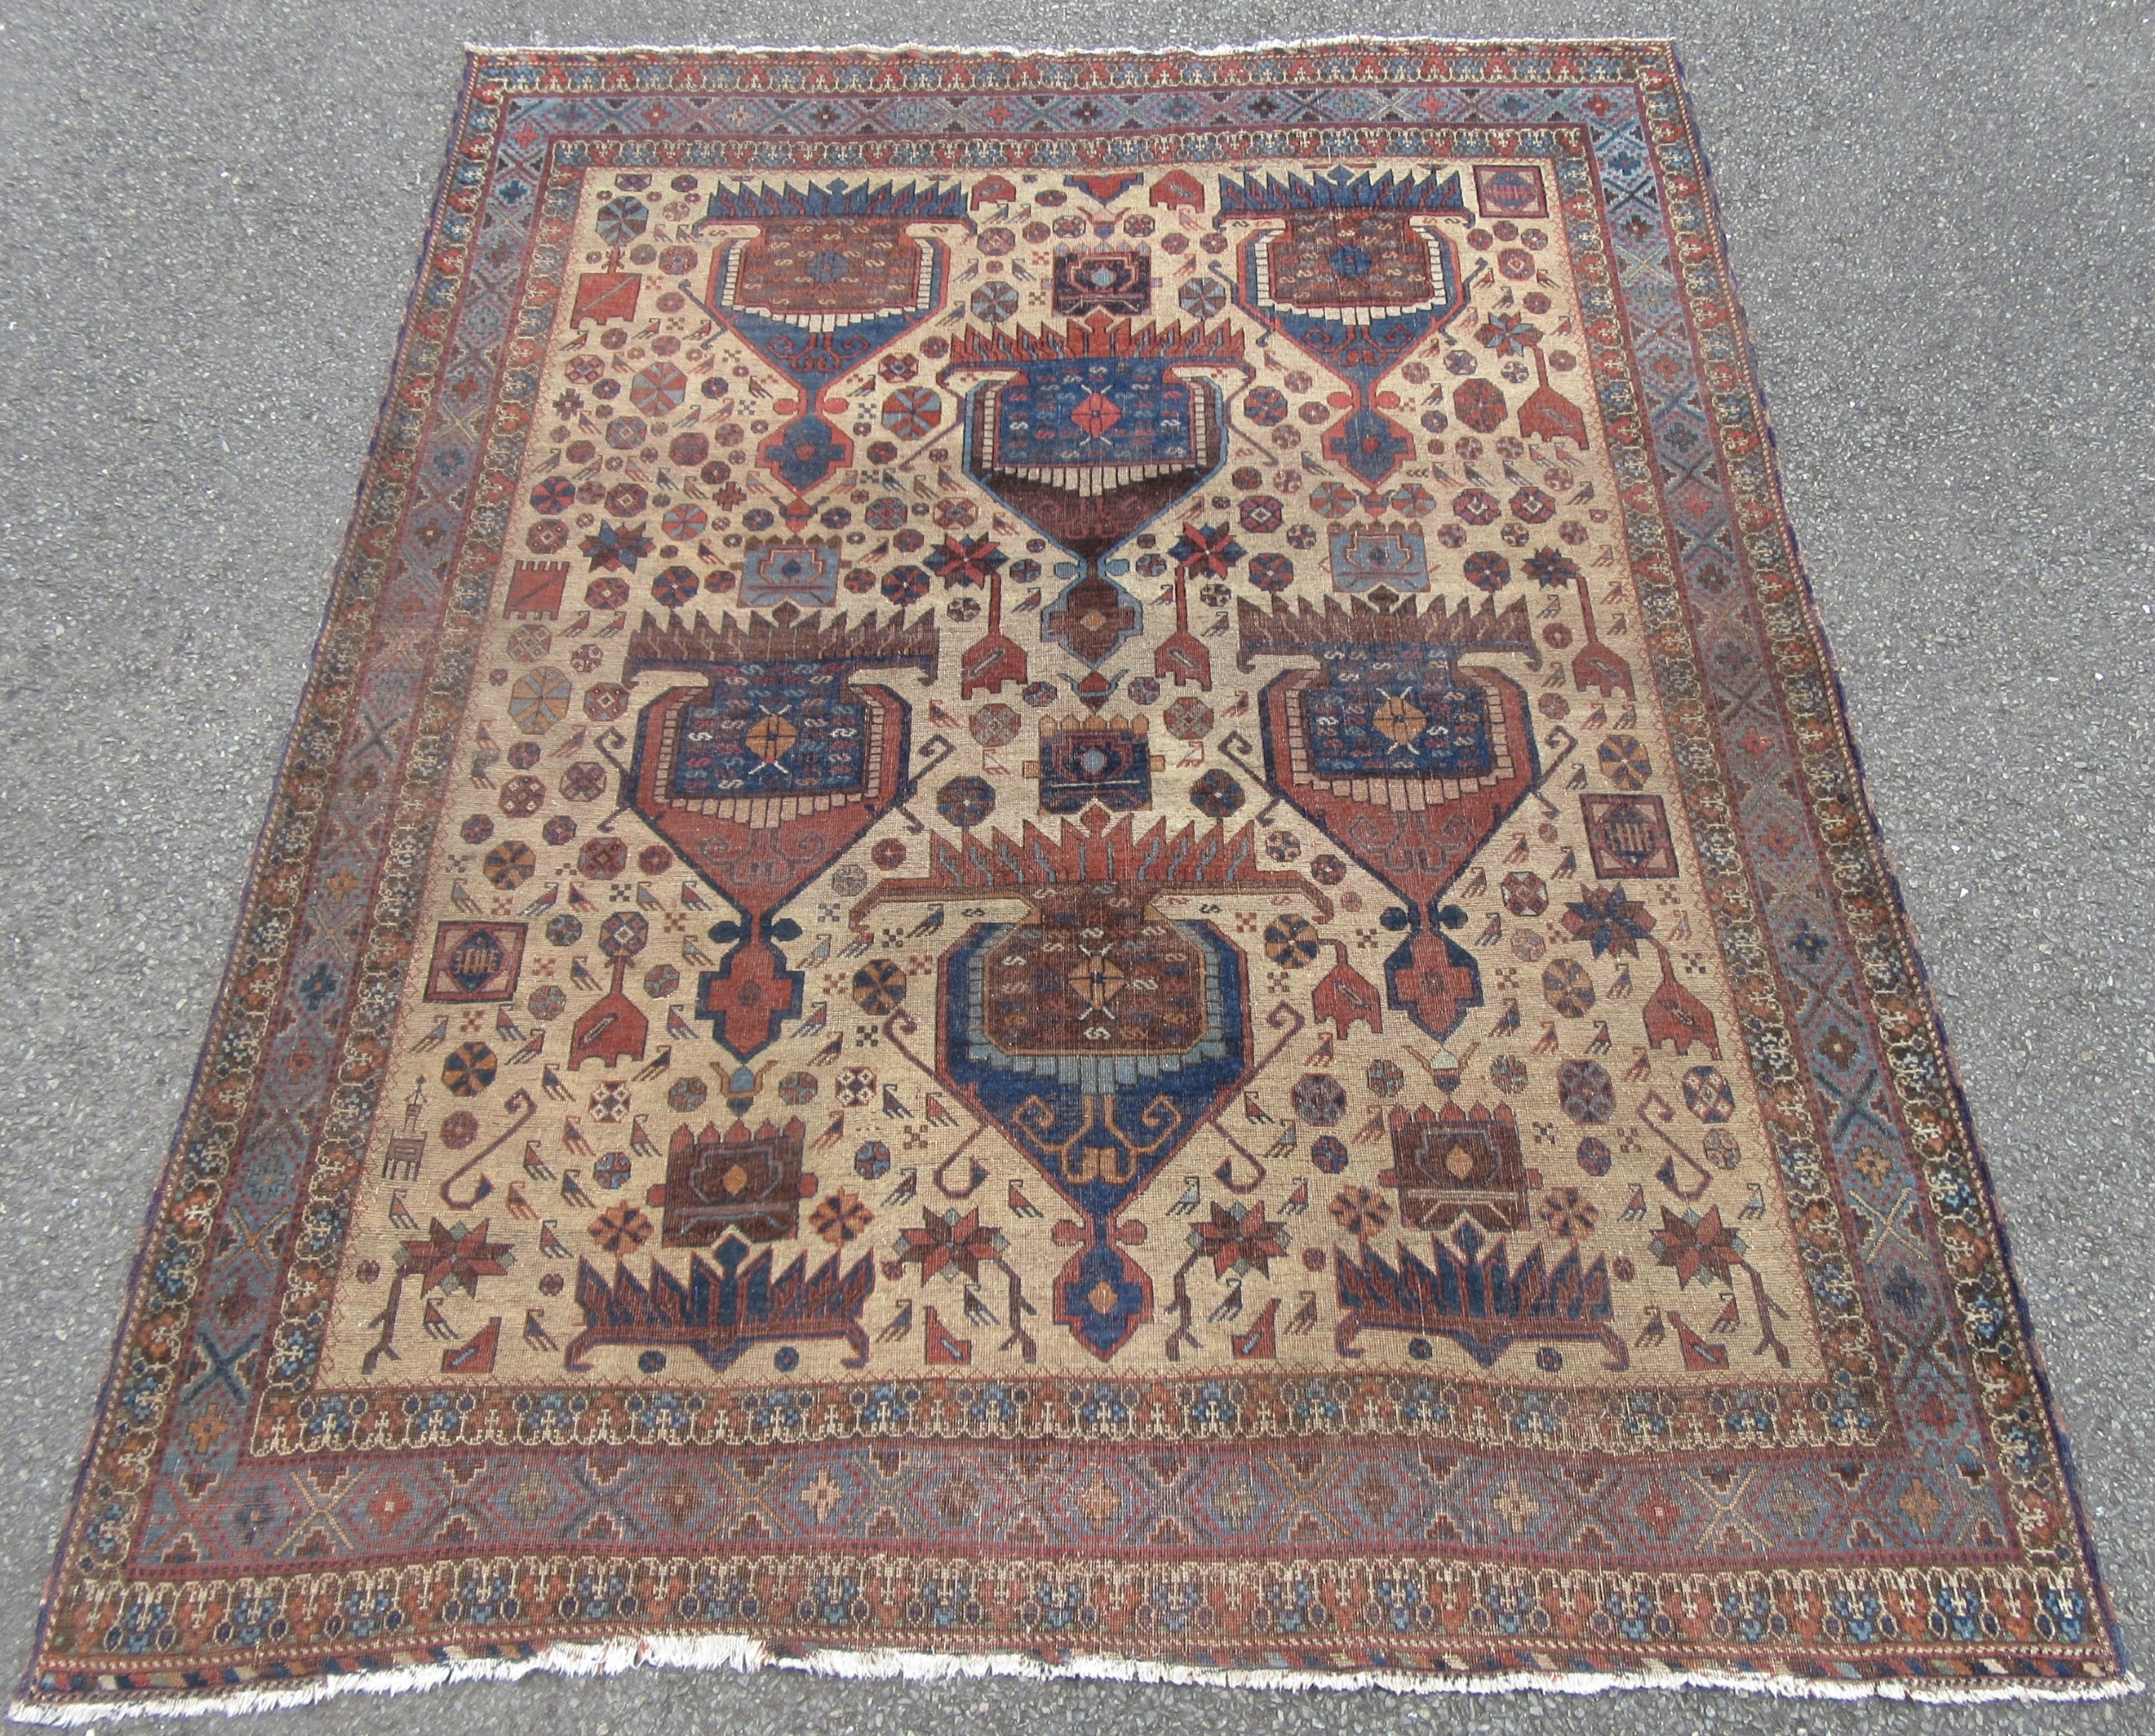 rare collectors antique south west persian afshar tribal rug 3rd quarter 19th century 18501875